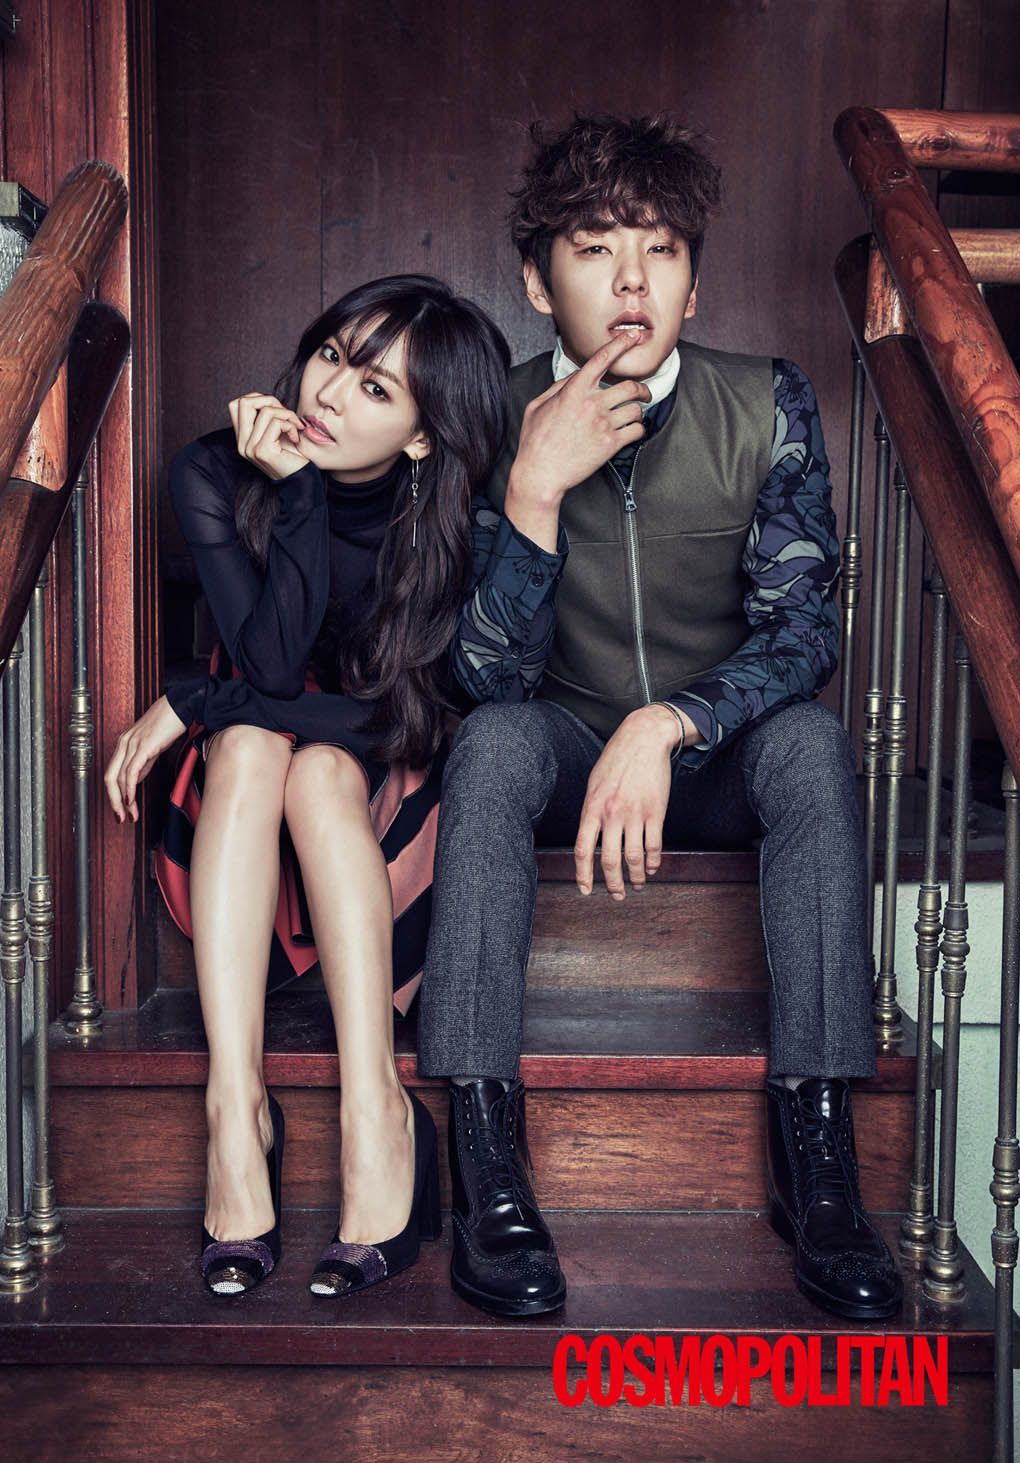 Kwak Si Yang & Kim So Yeon Ooze Chemistry in Cosmopolitan Shoot